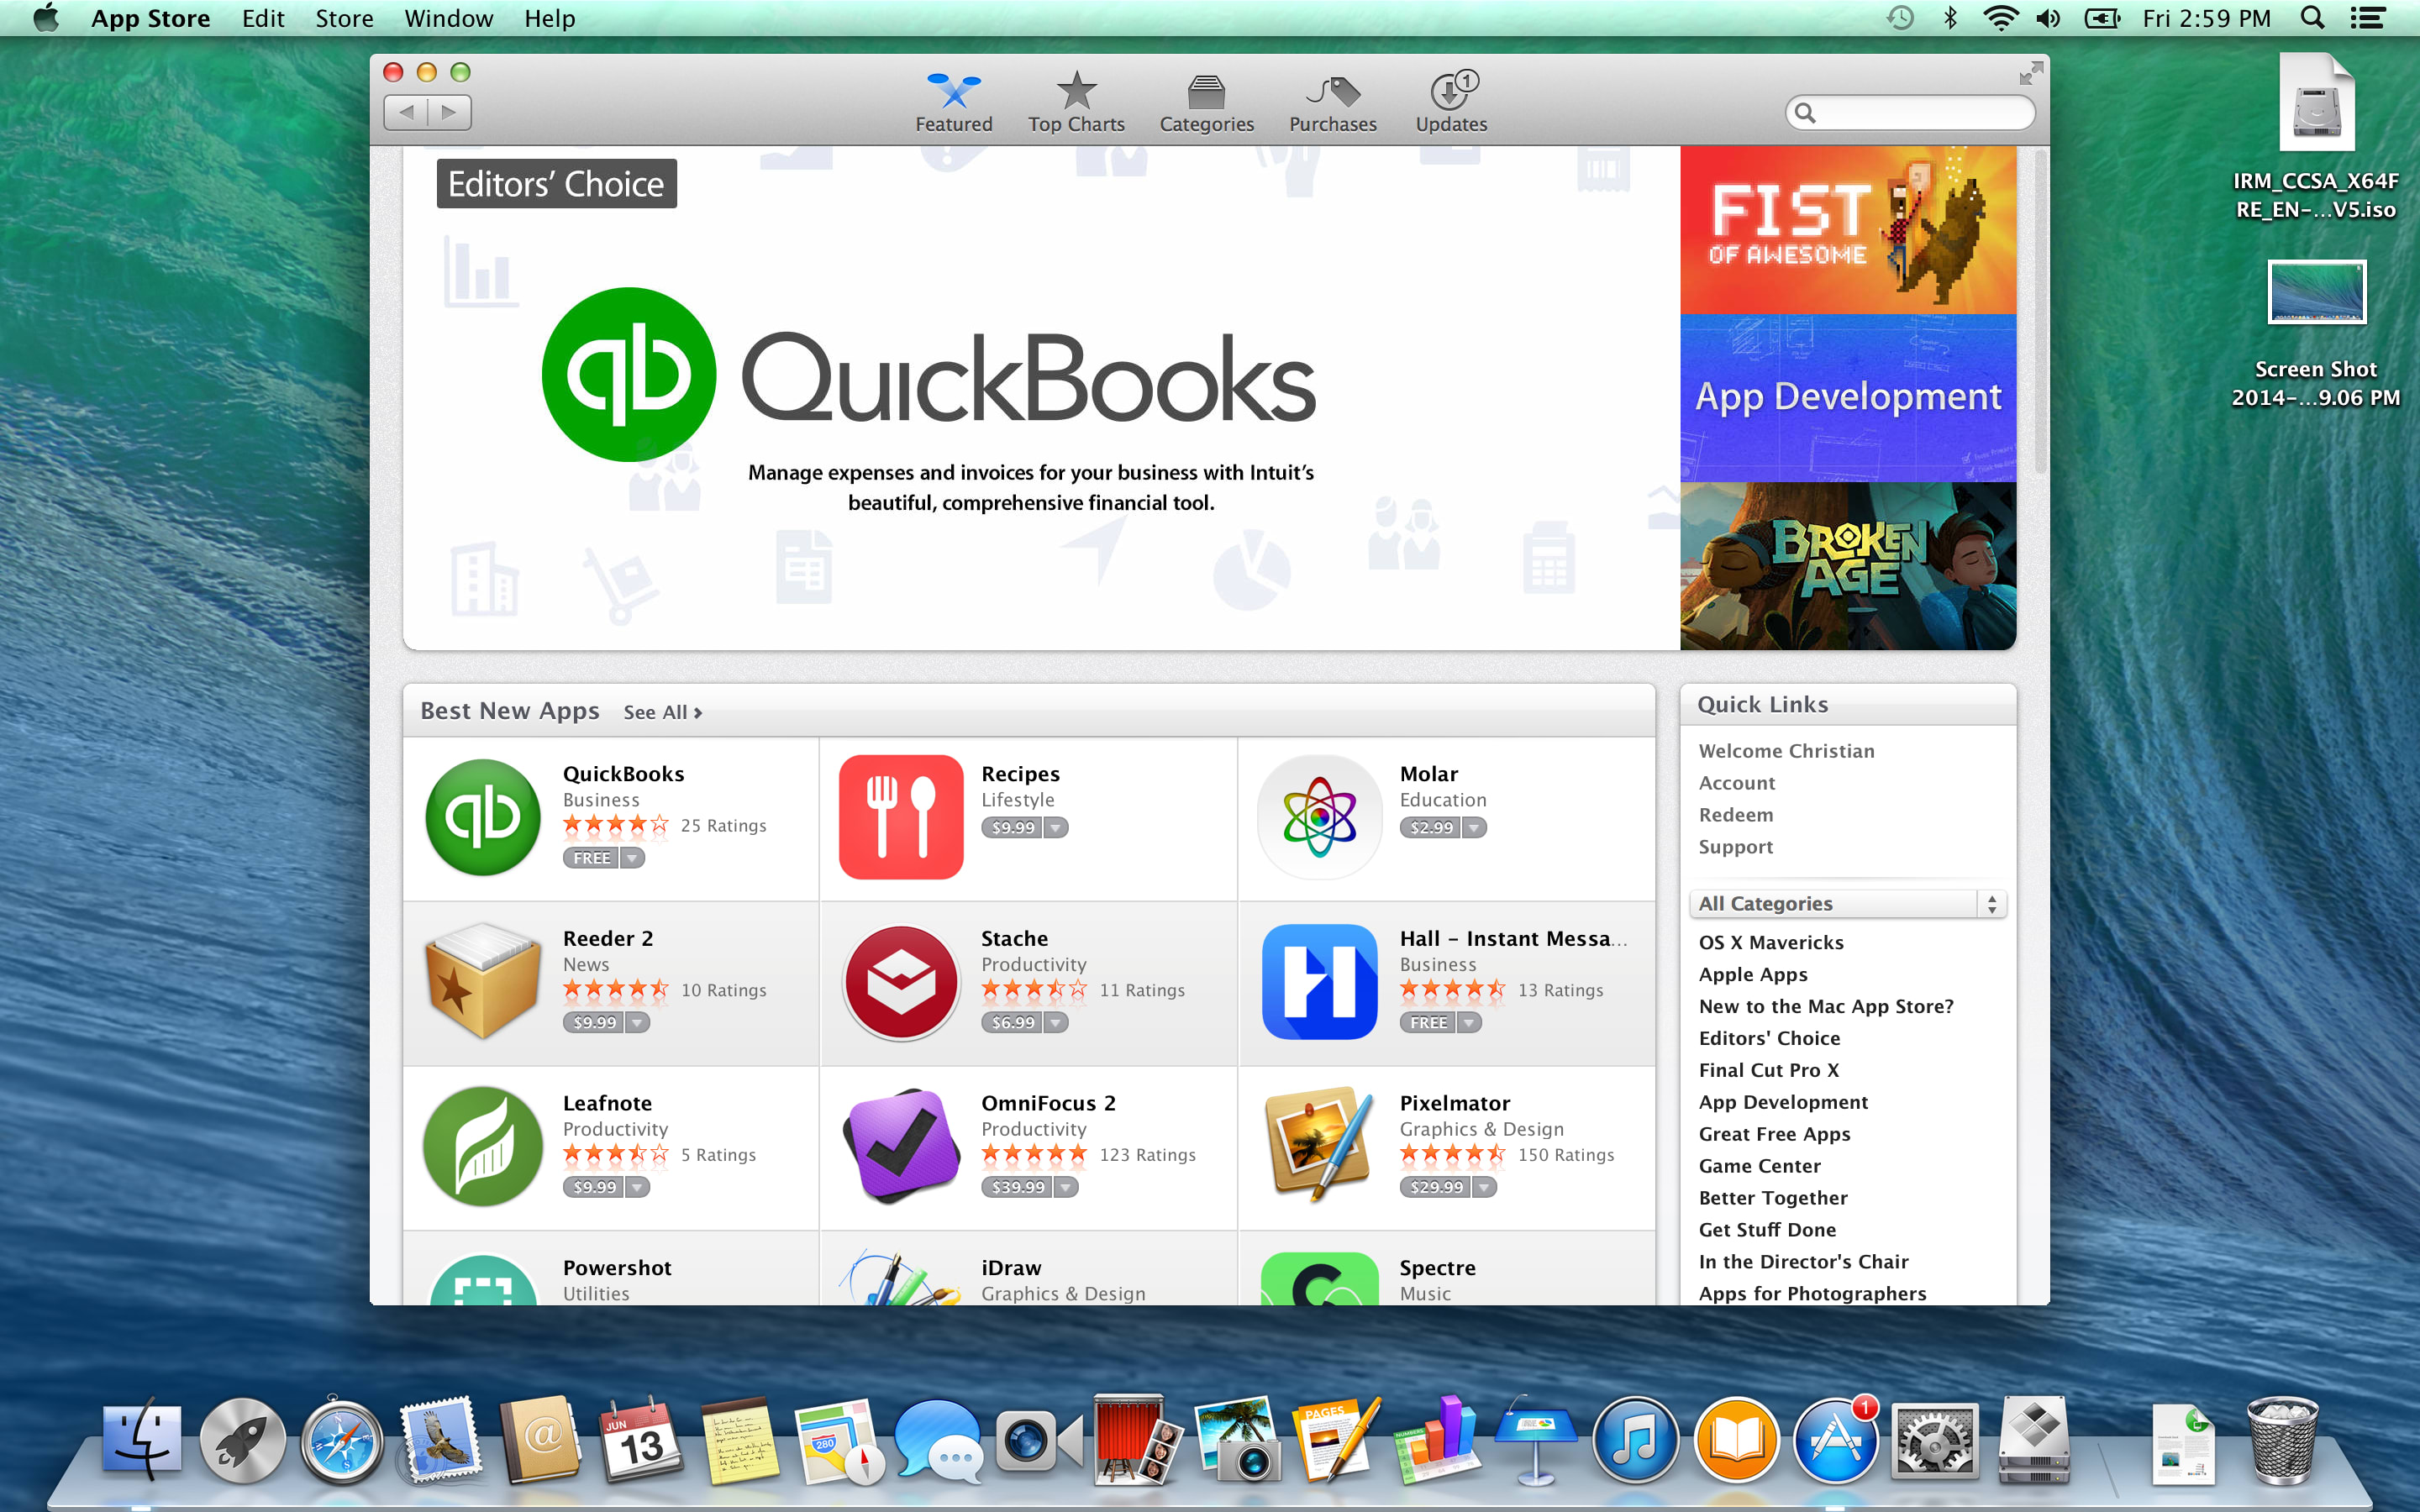 A screenshot of the Apple MacBook Pro with Retina Display's App Store.